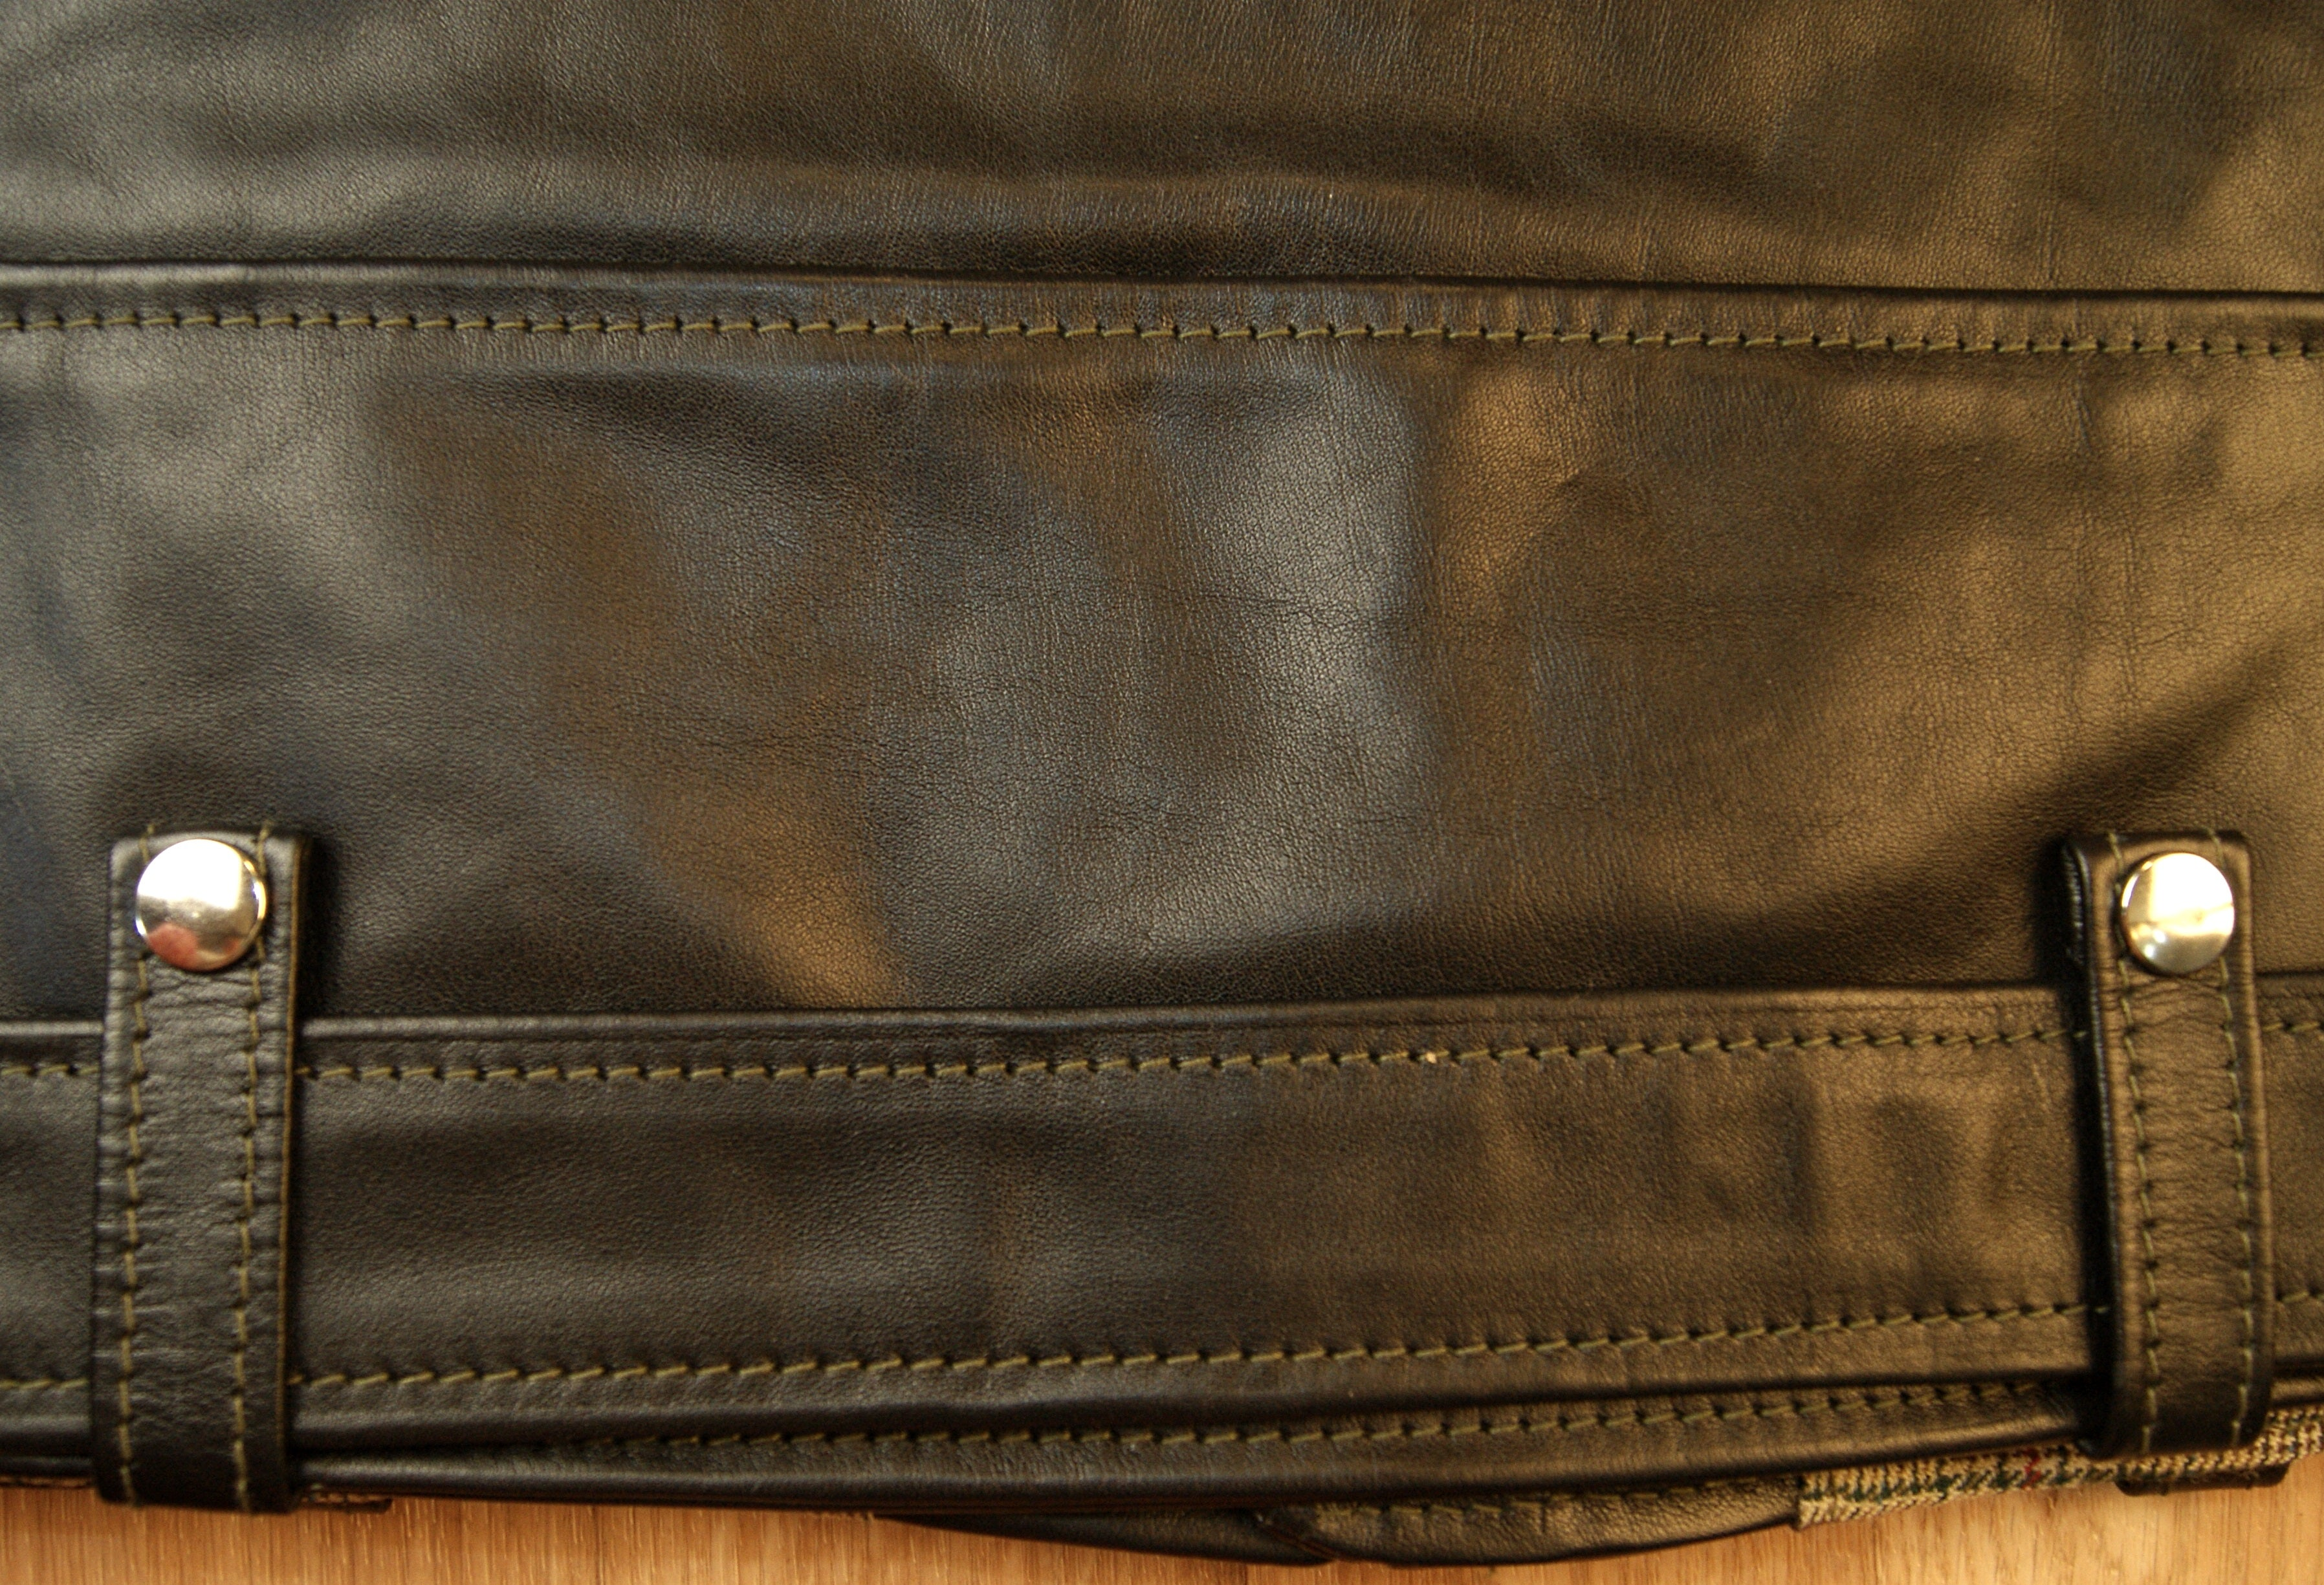 Aero D-Pocket Ridley, size 38, Black Vicenza Horsehide